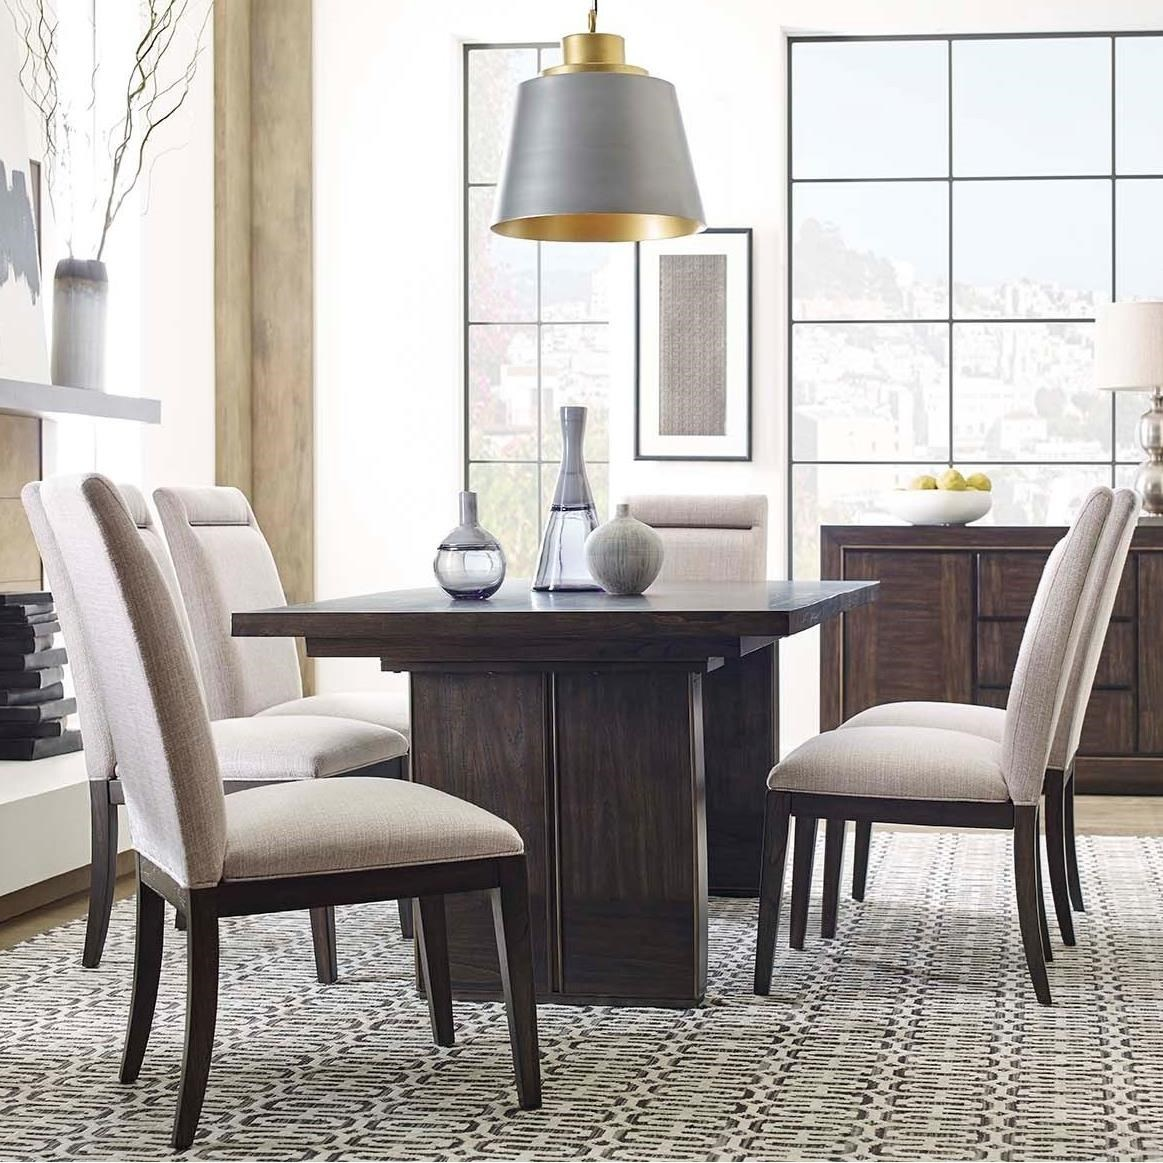 MacArthur Terrace Contemporary Rustic 7 Piece Dining Set With Center Leaf  By Magnussen Home